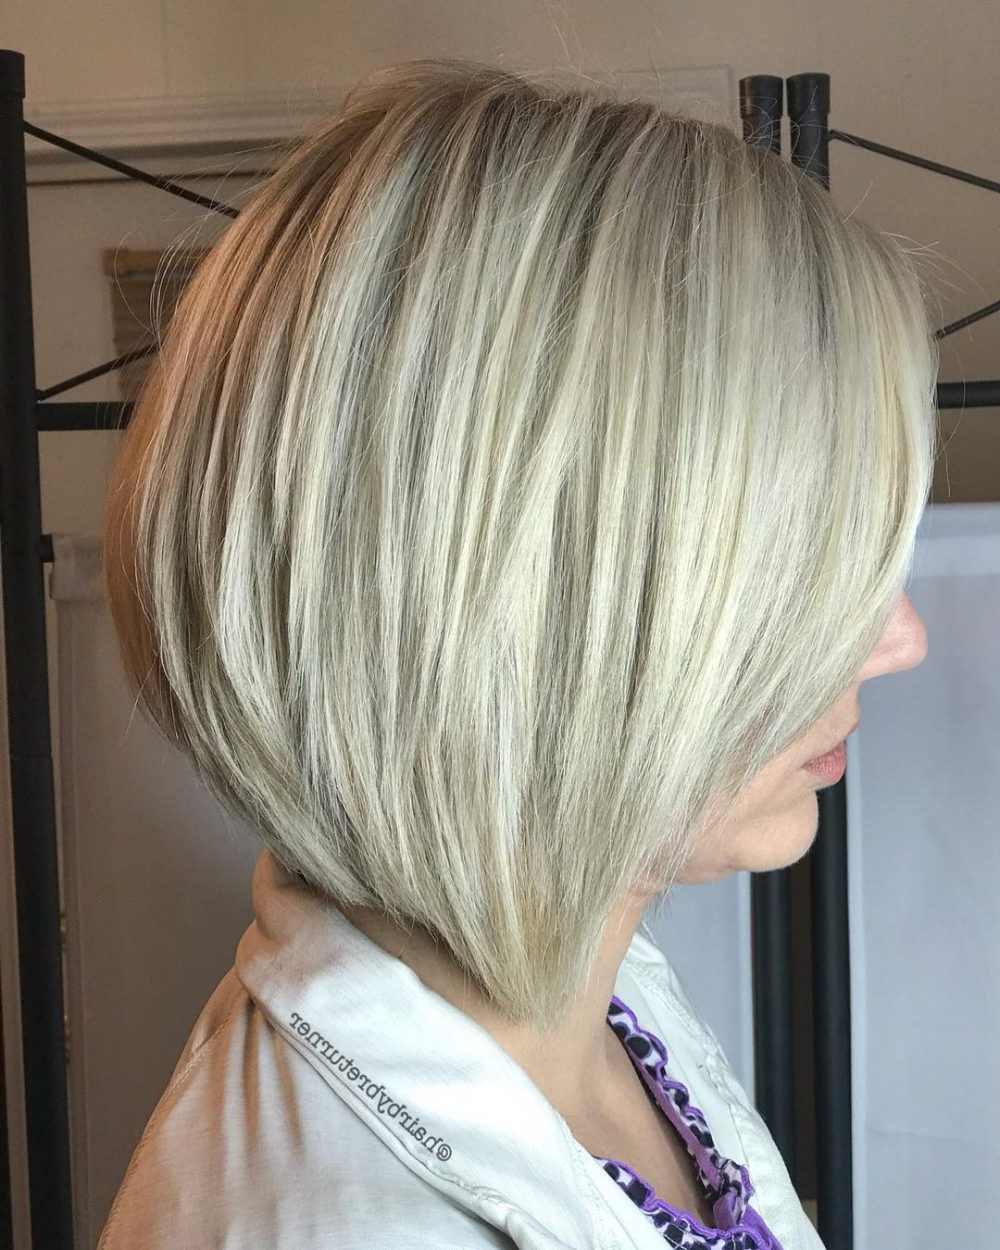 42 Sexiest Short Hairstyles For Women Over 40 In 2019 With Regard To Most Up To Date Medium Haircuts For Women In 40S (View 4 of 20)